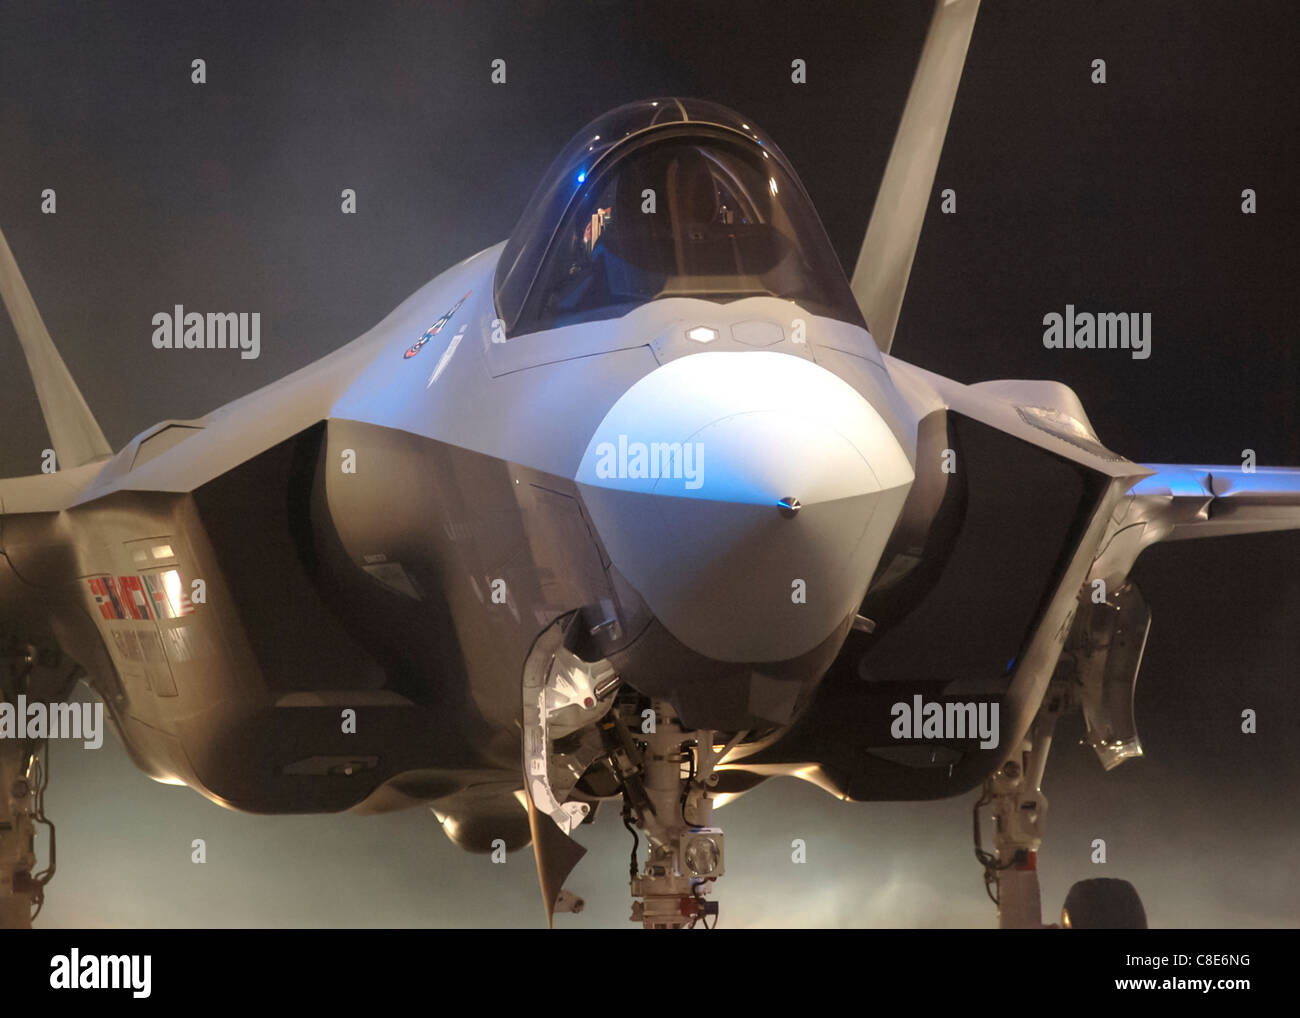 Air Force Chief of Staff Gen. T. Michael Moseley announced Lightning II as the F-35 name - Stock Image